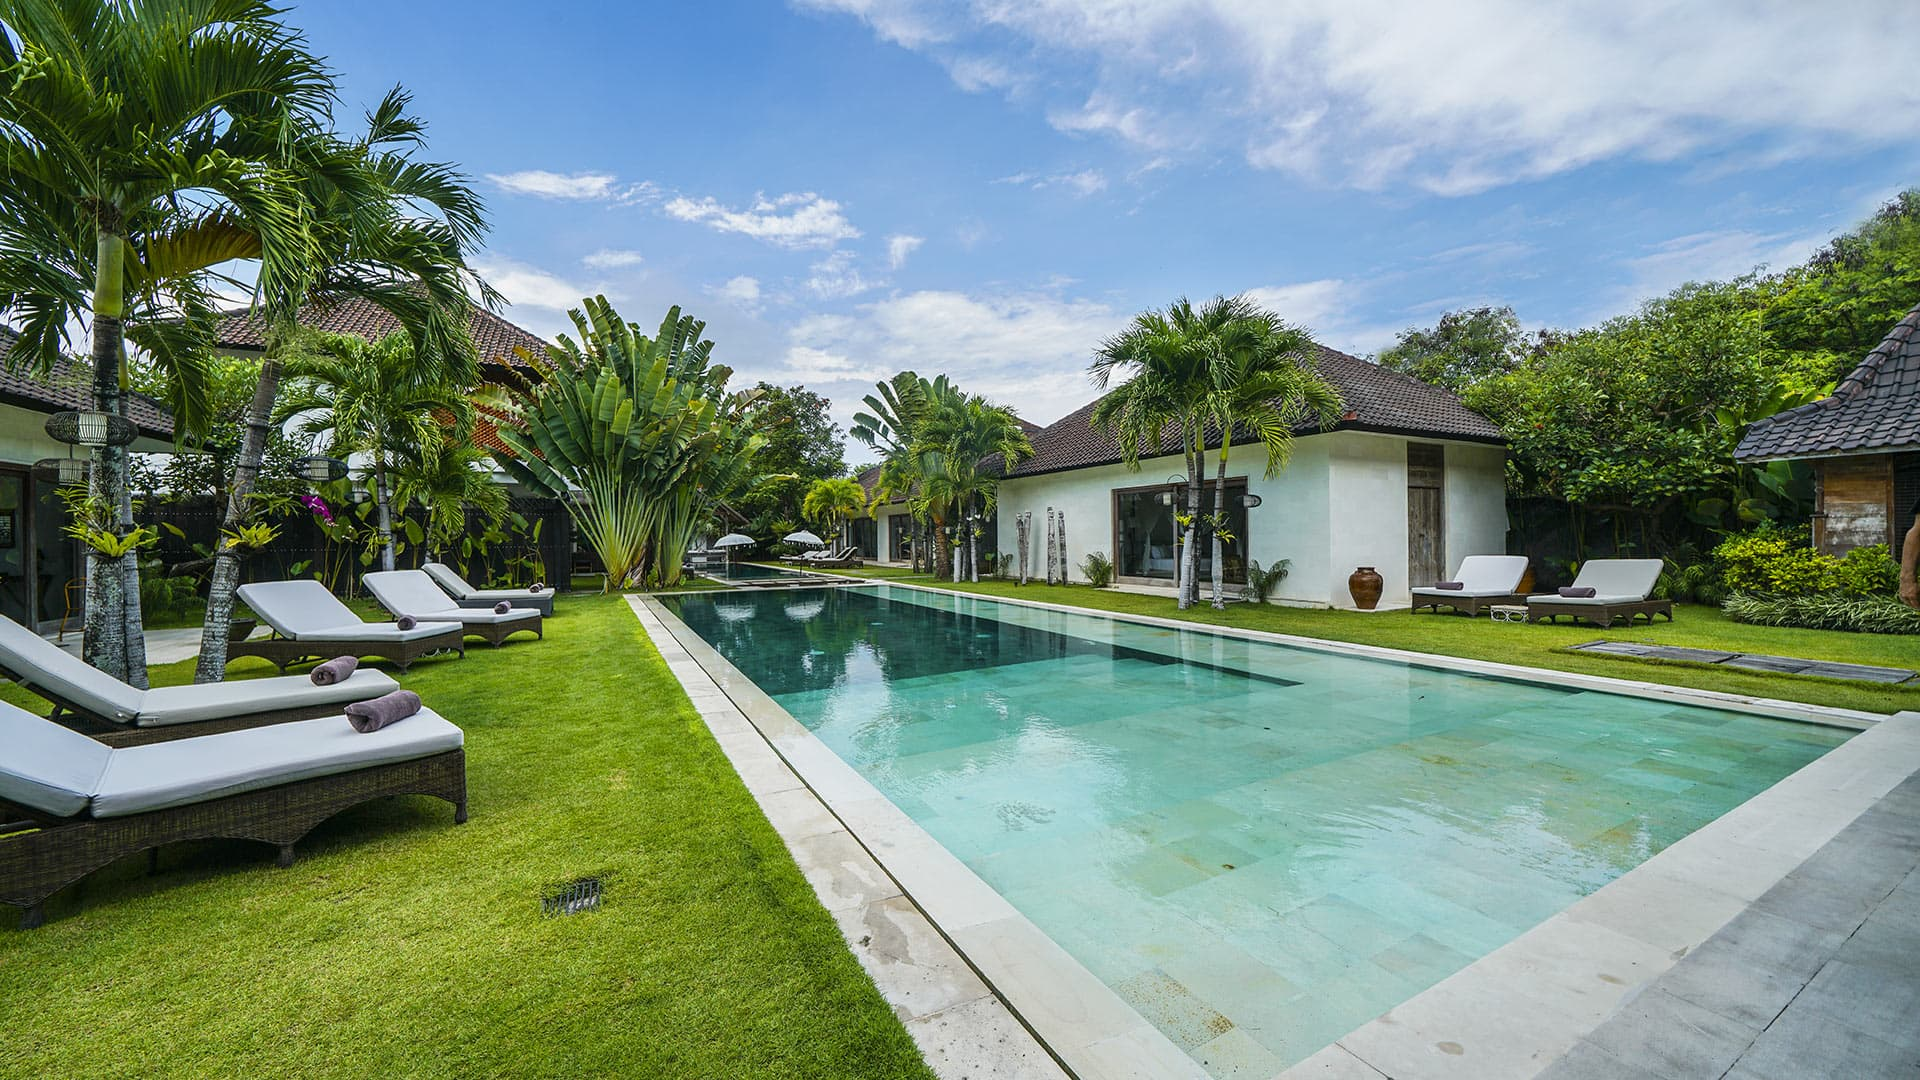 Villa Villa Illia, Rental in Bali